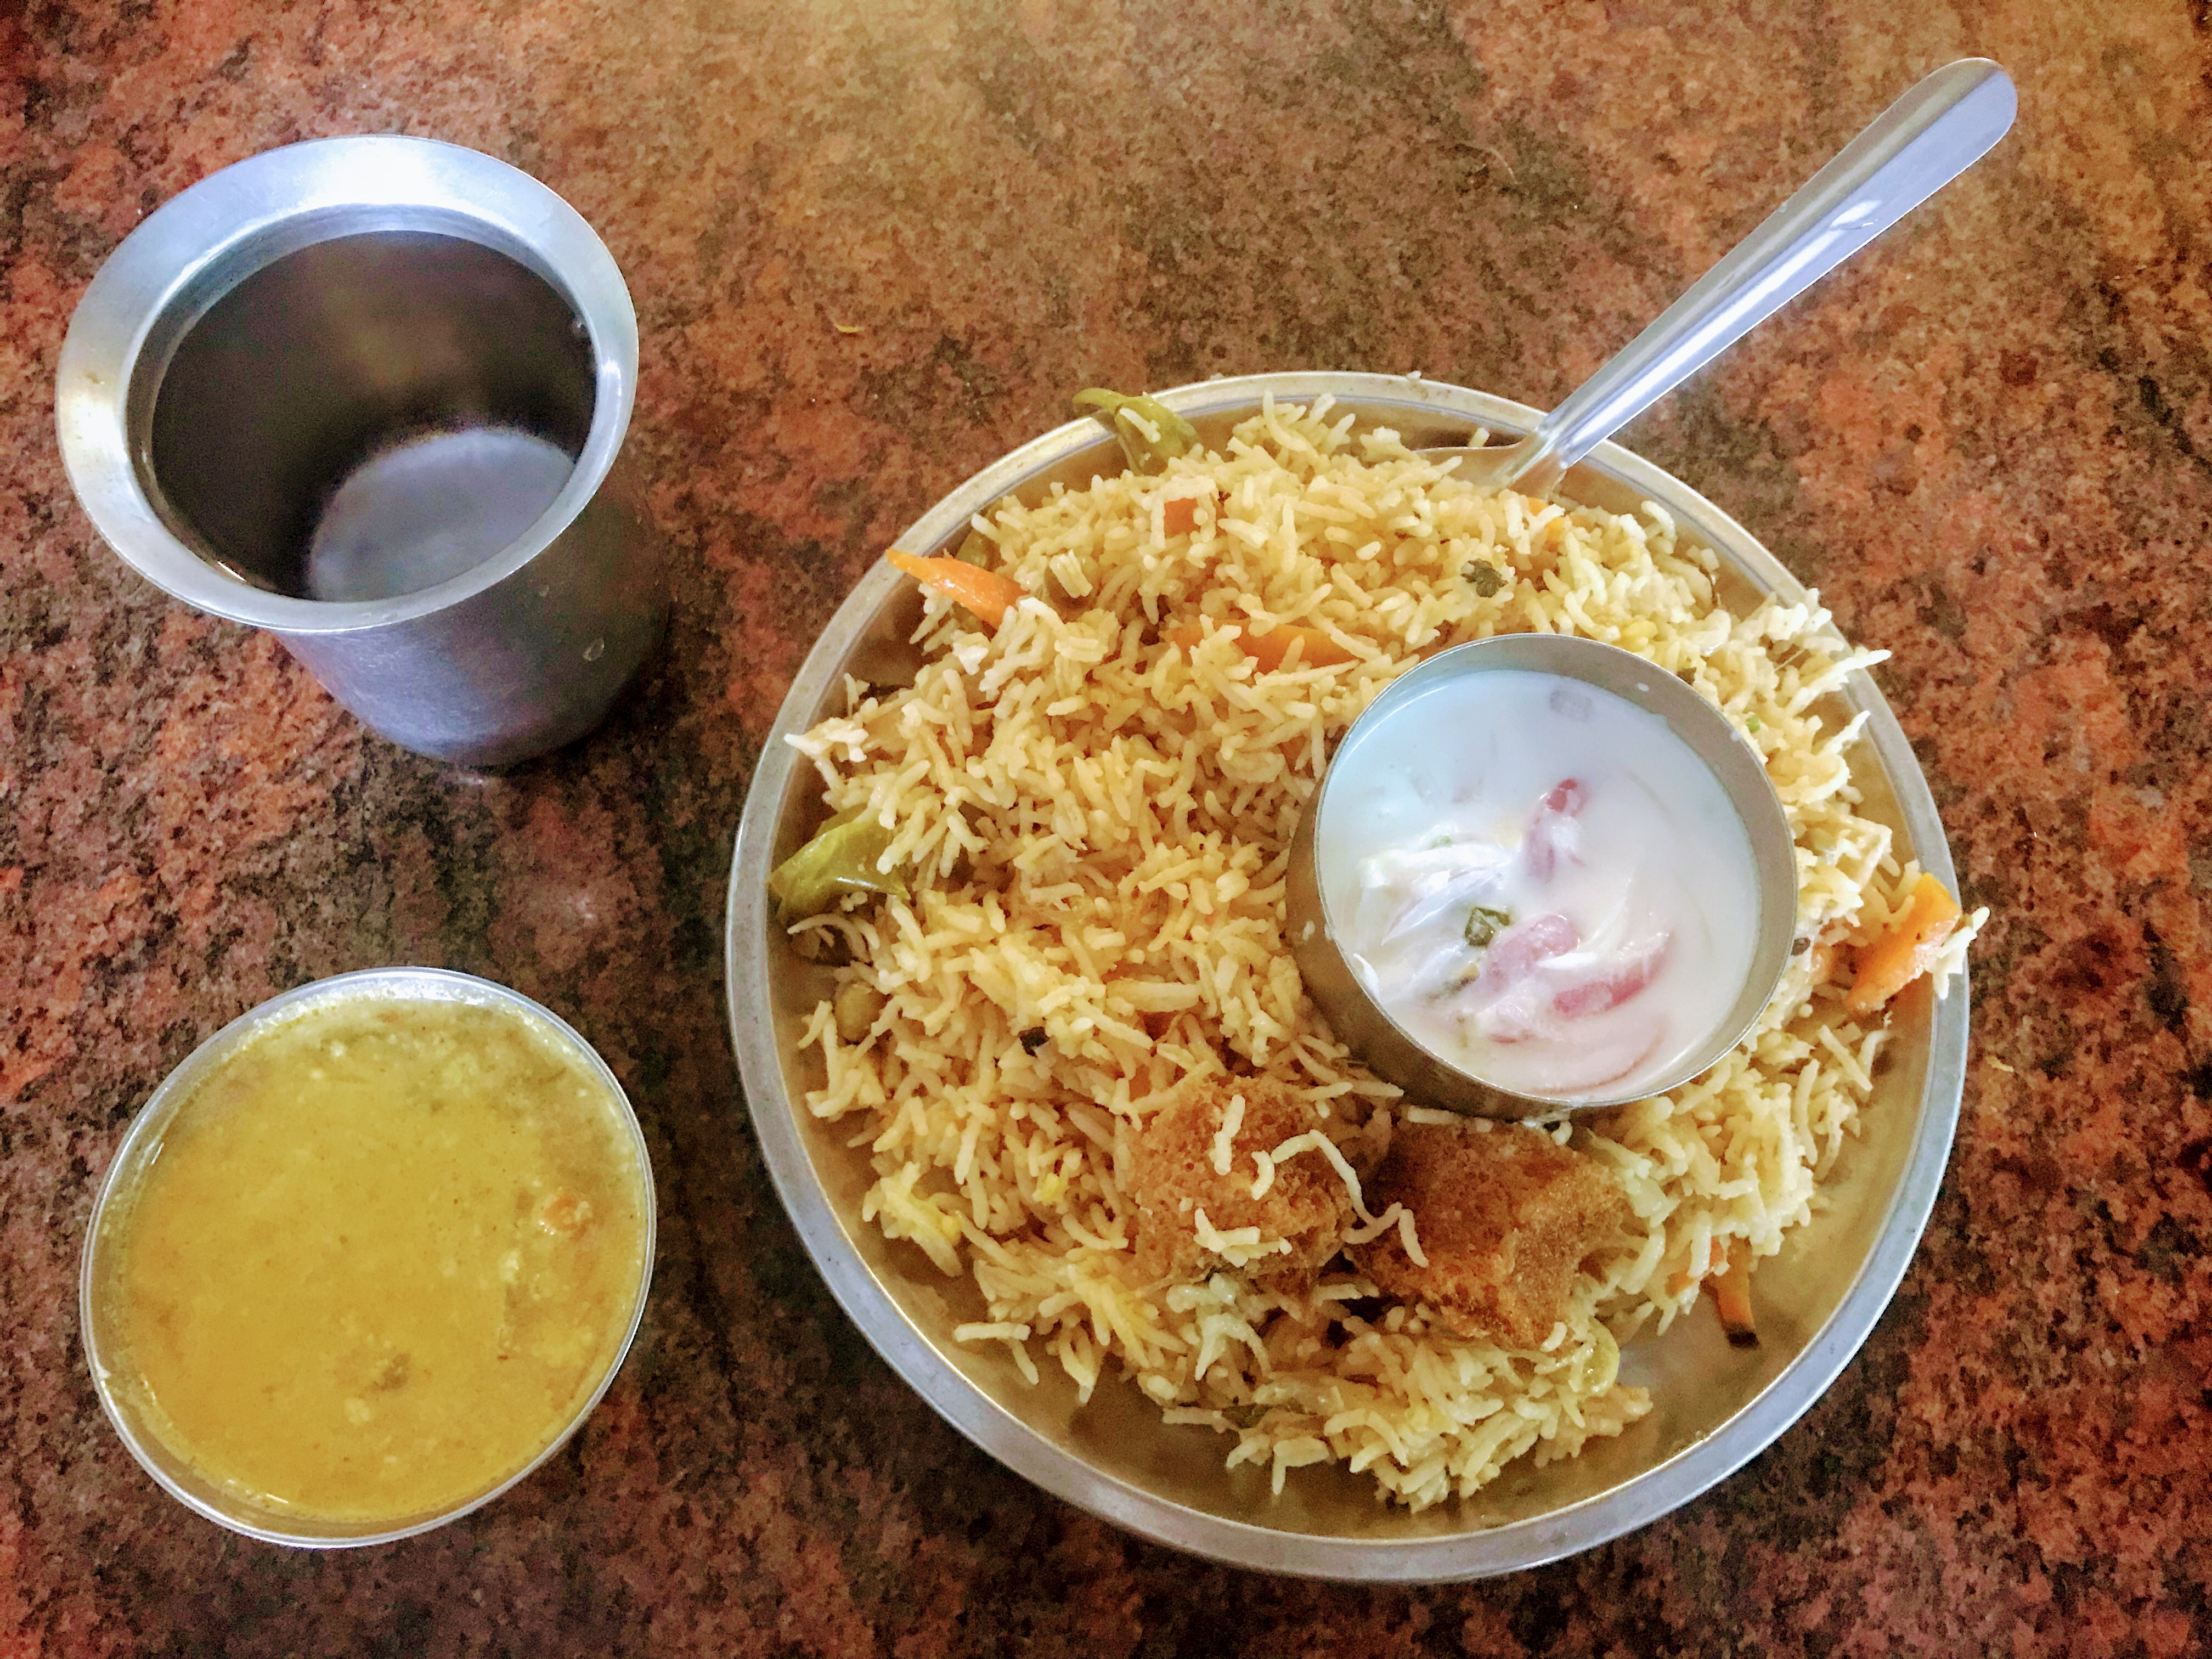 Biriyani at Indian Coffee House from Life of Pi, Pondicherry